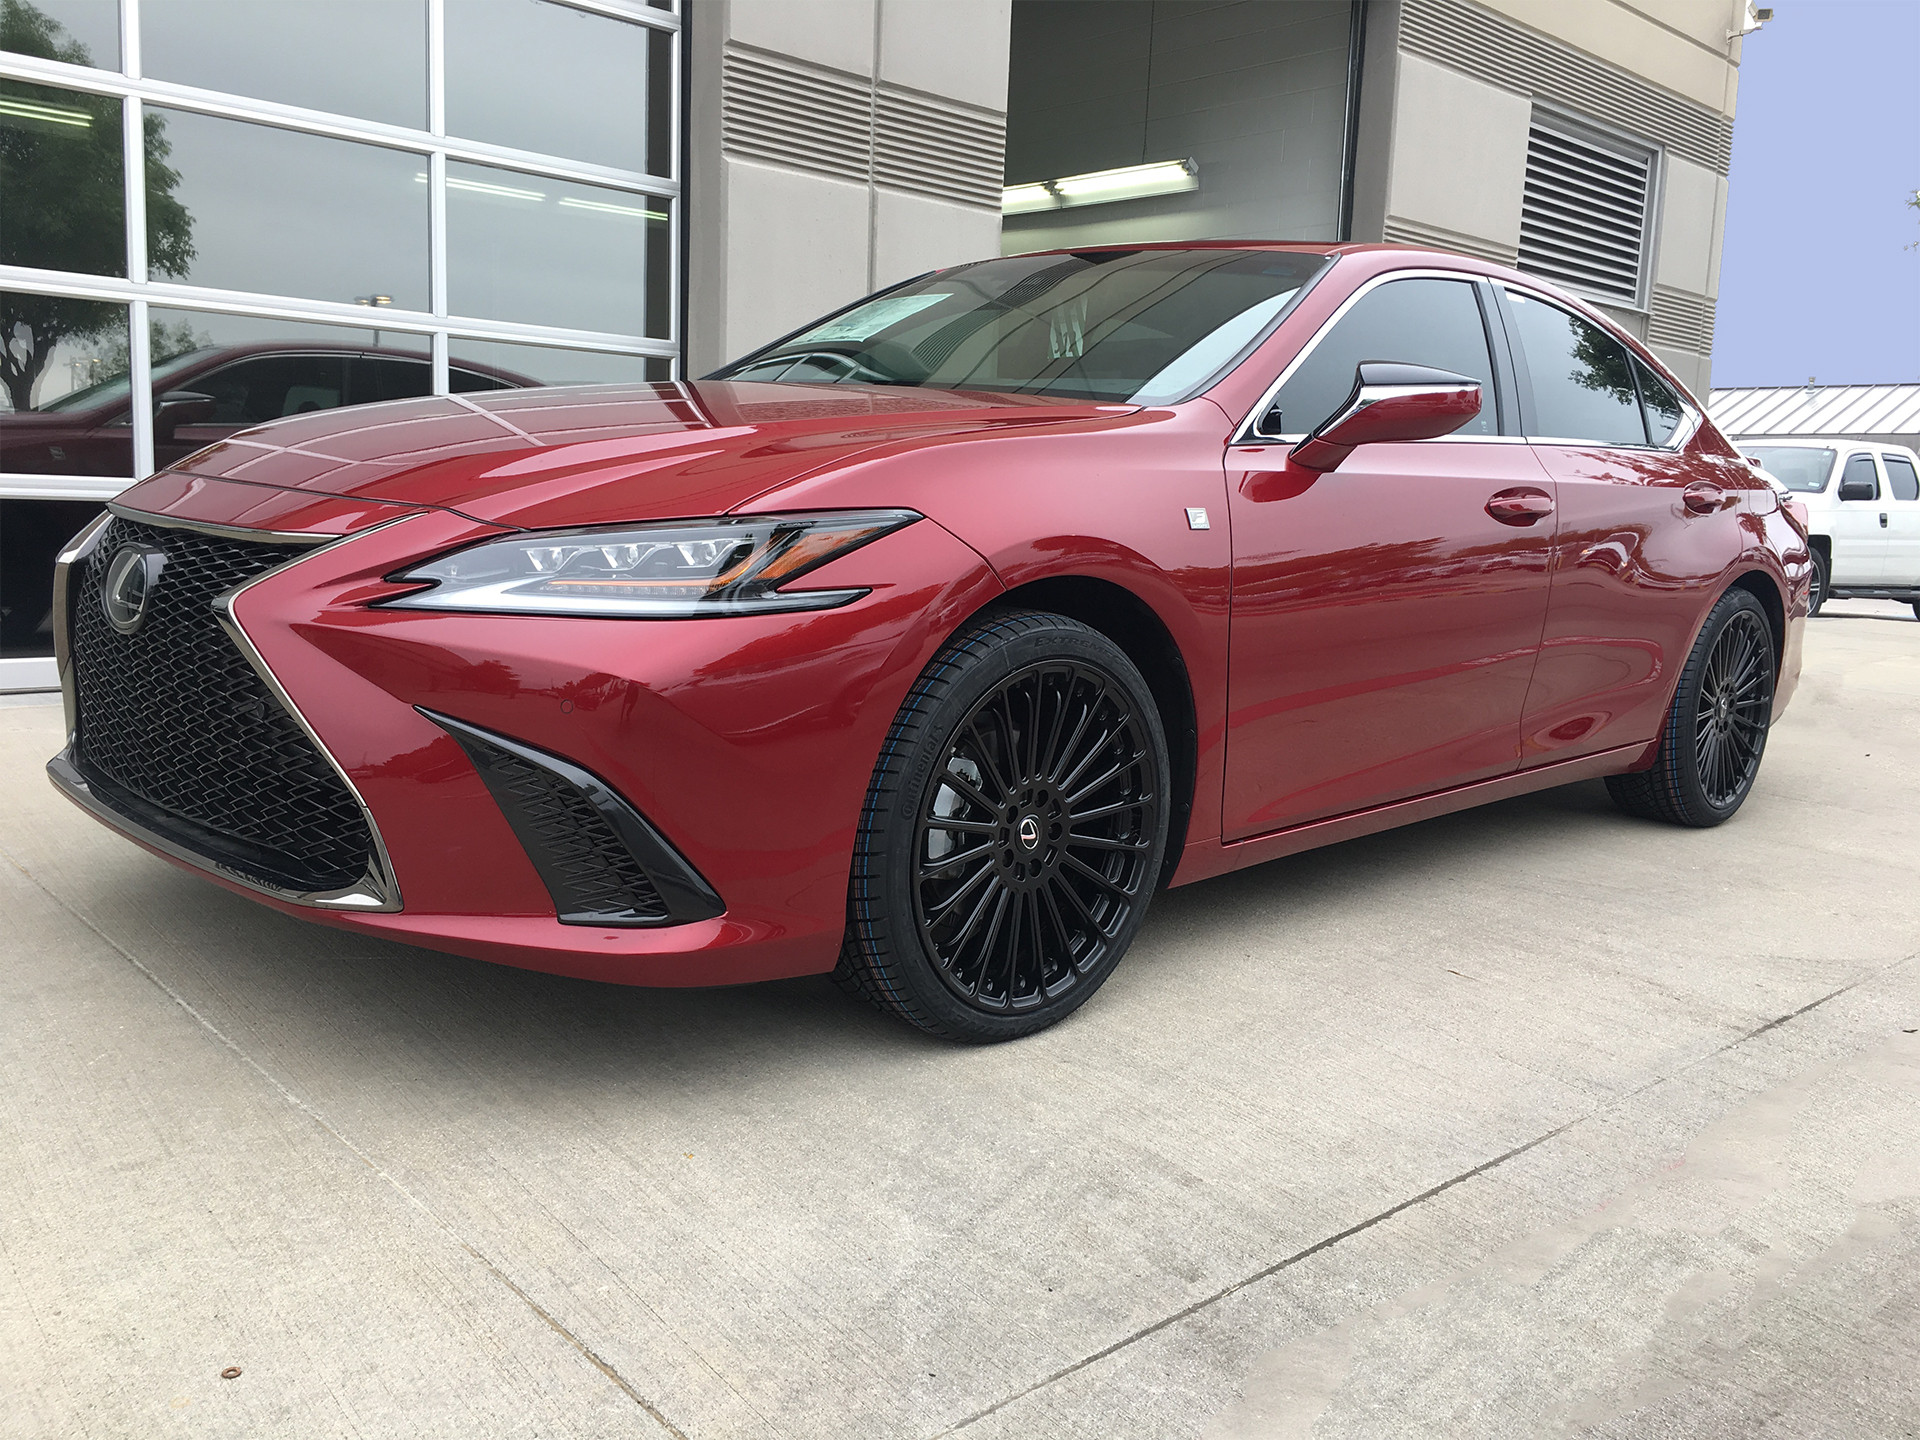 Lexus ES350 F-sport with TSW Turbina wheels